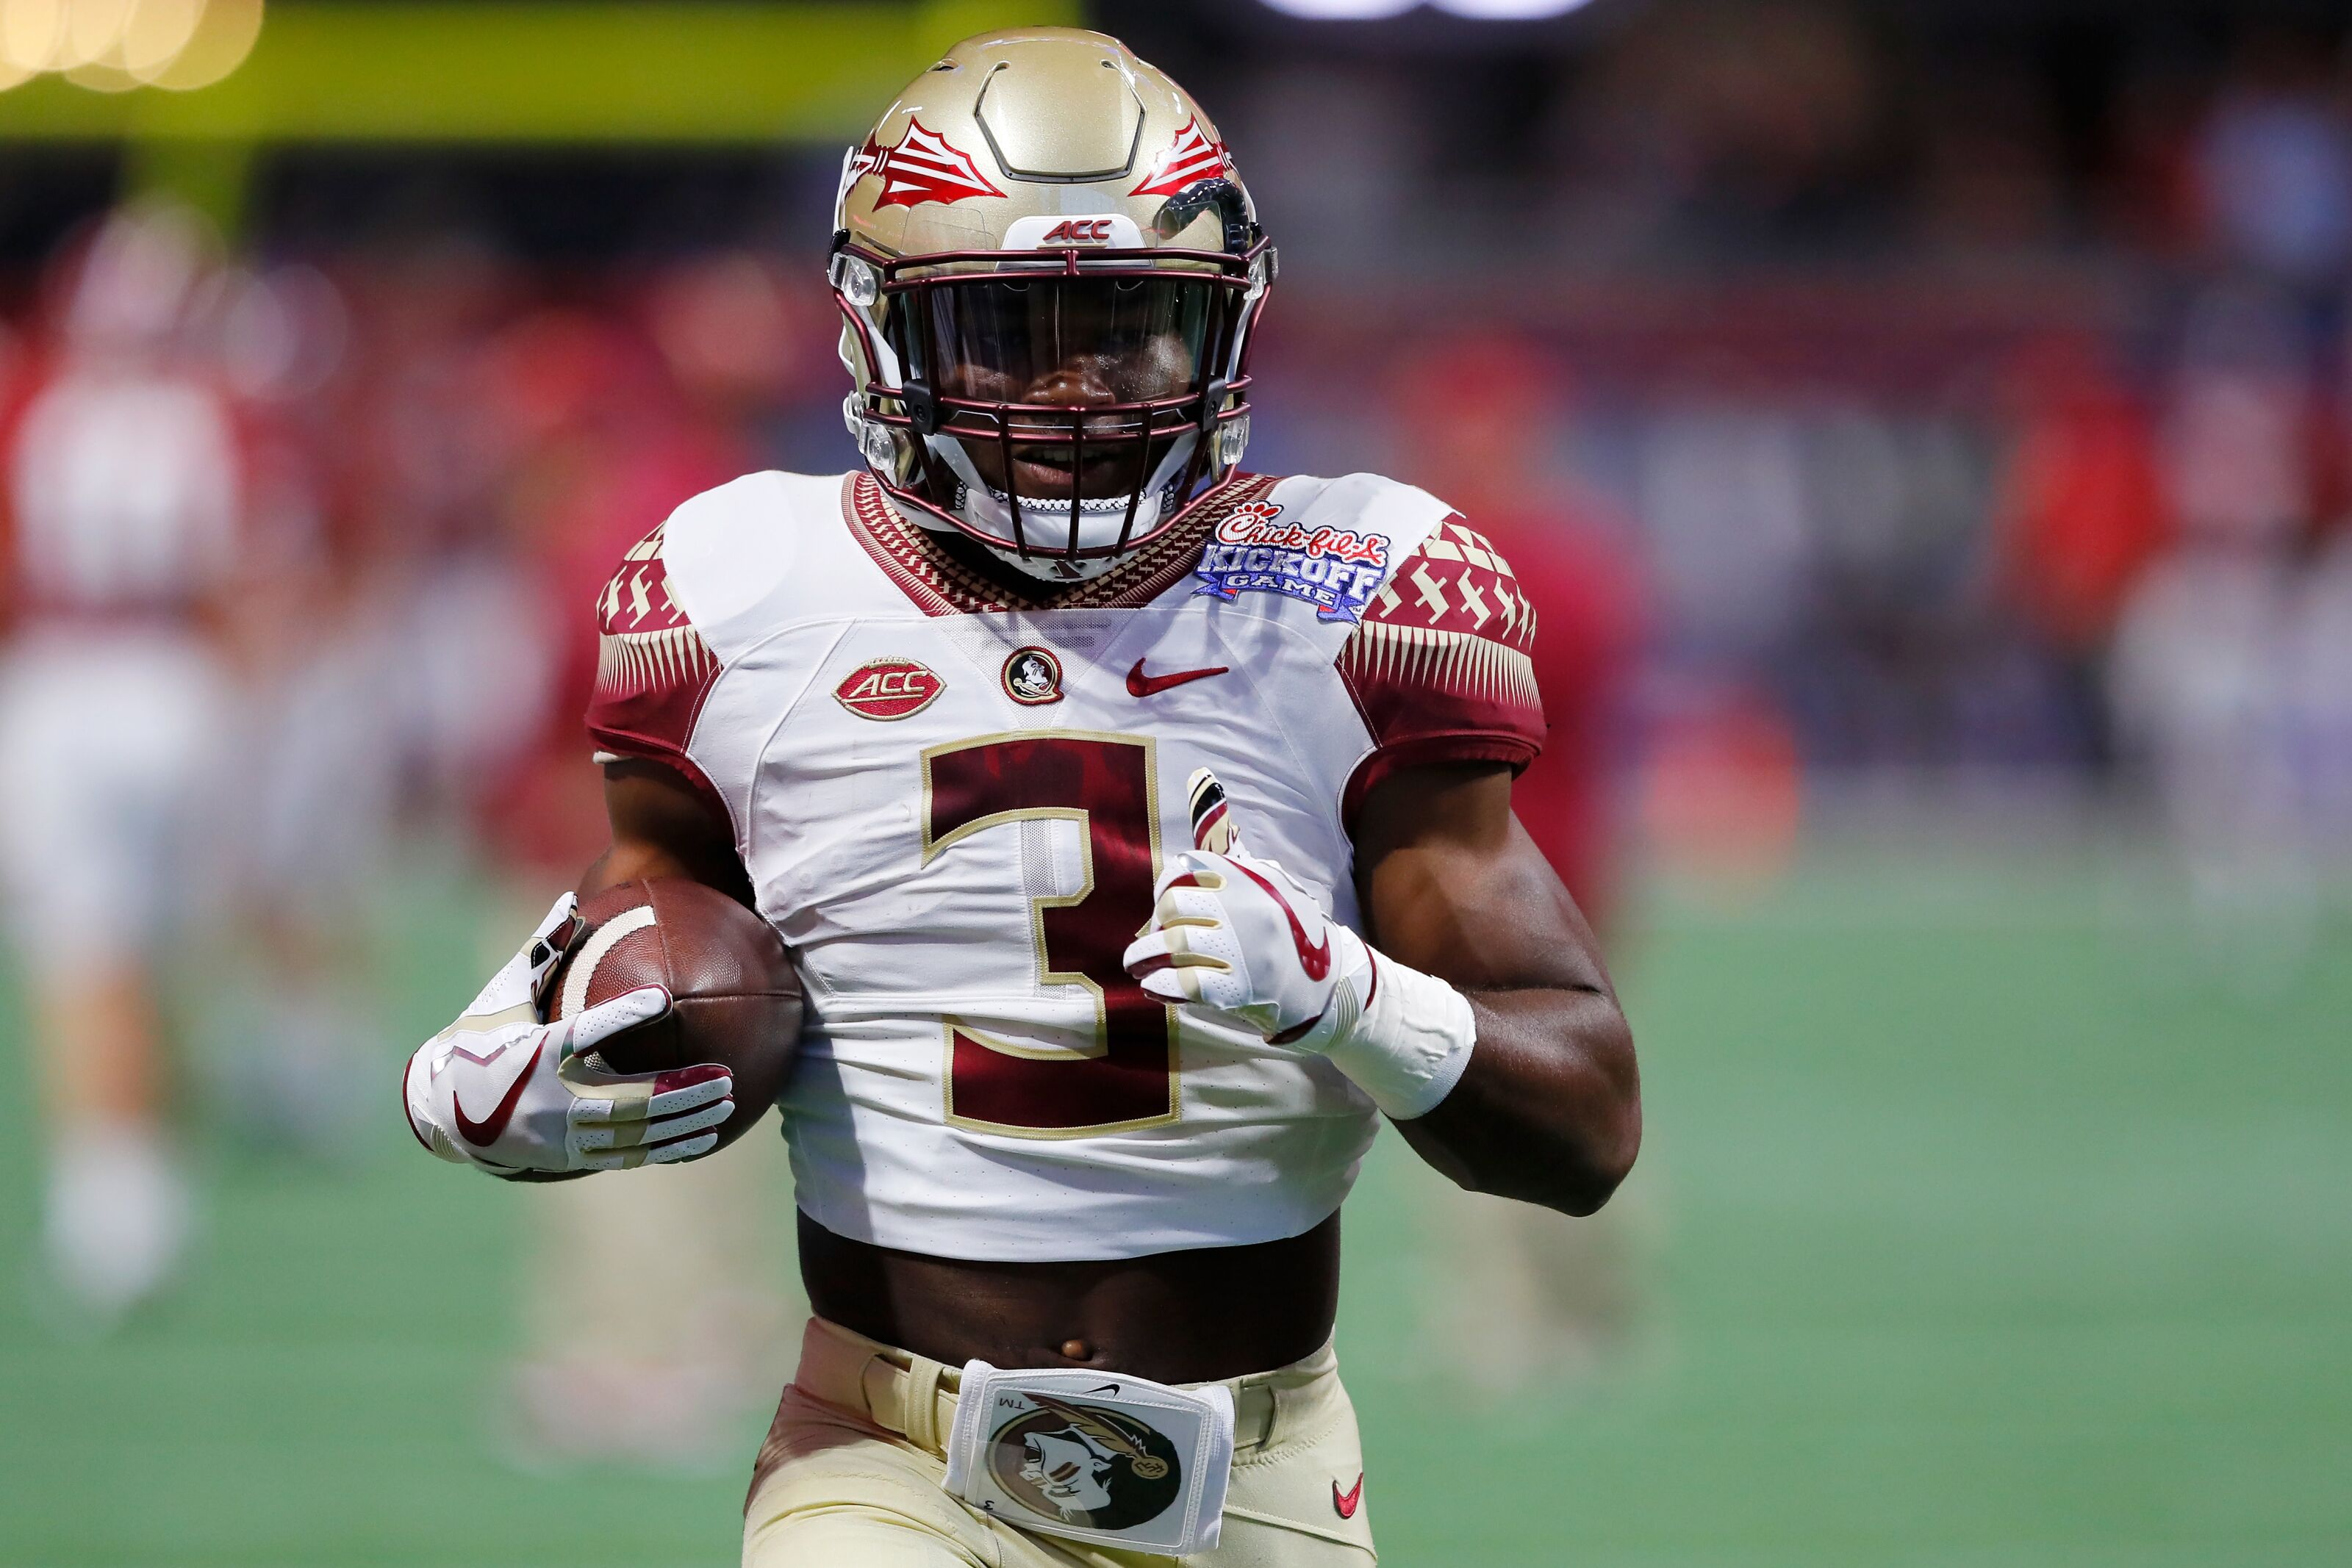 FSU football: Fans react to Cam Akers declaring for NFL Draft